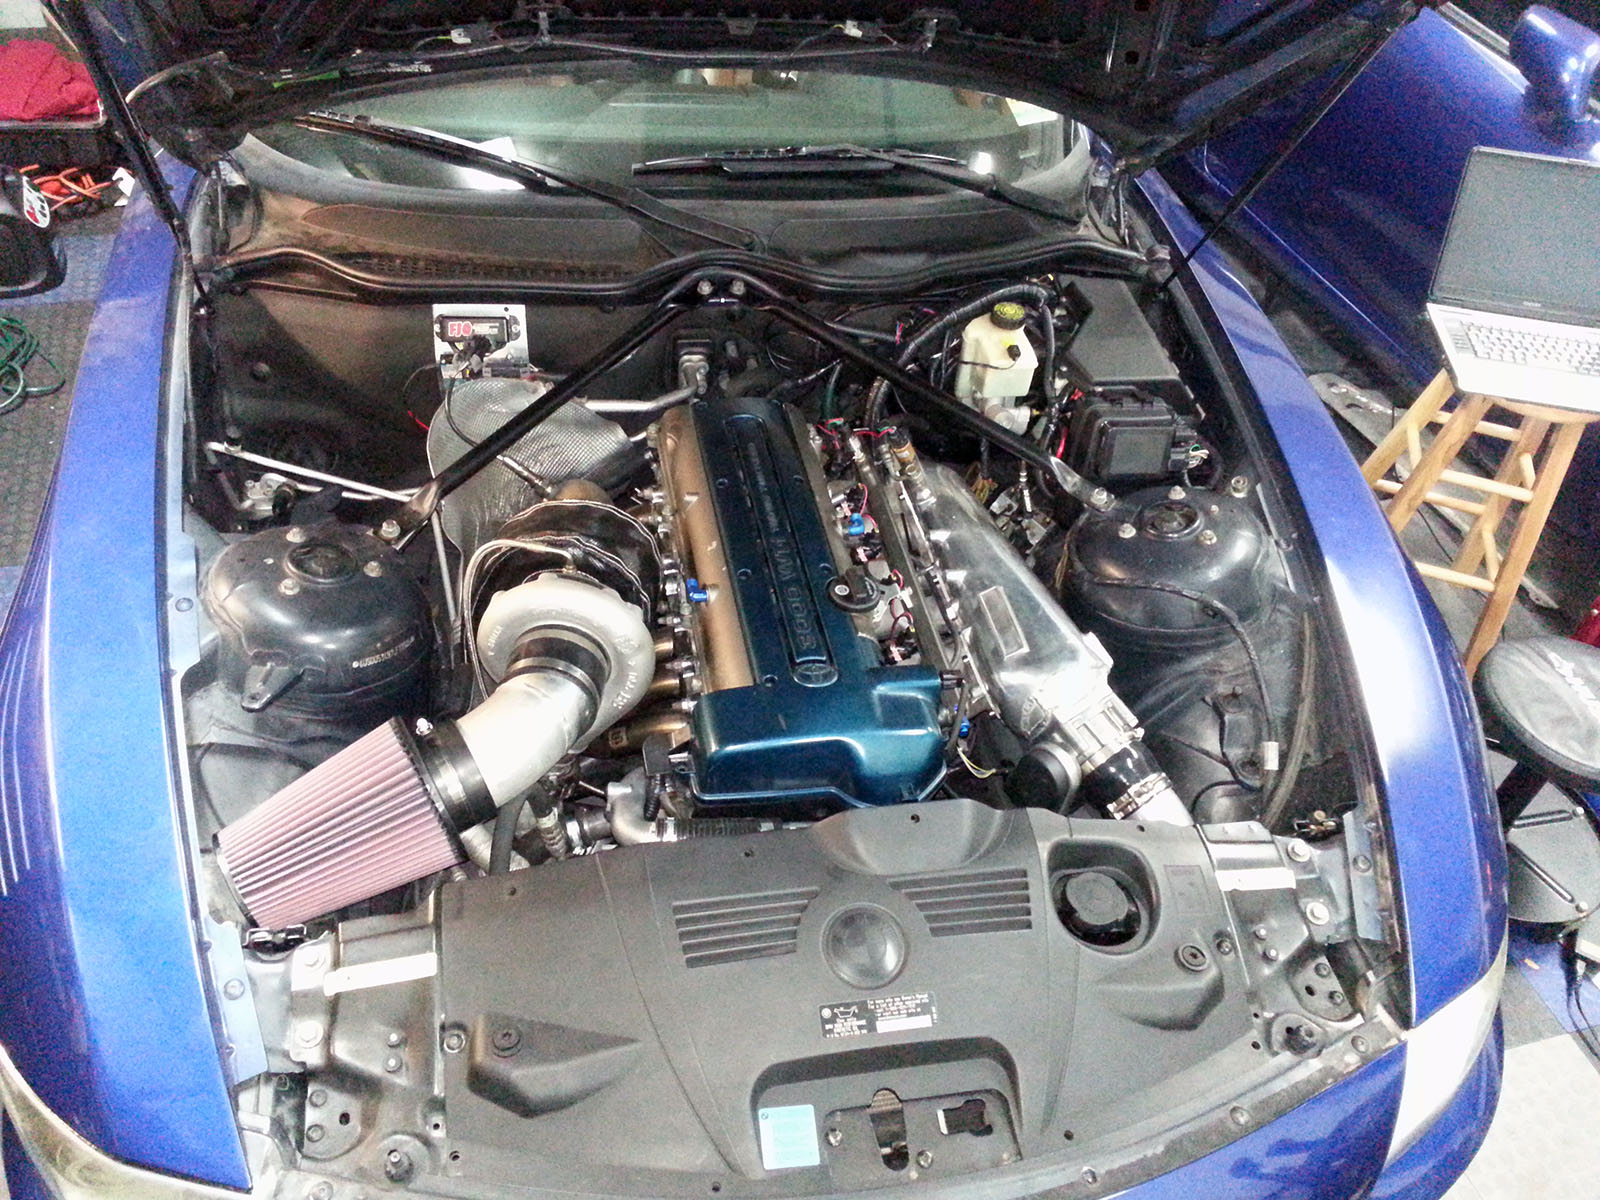 Bmw Z4 With A Turbo 2jz Inline Six Engine Swap Depot E39 Wire Harness An Error Occurred